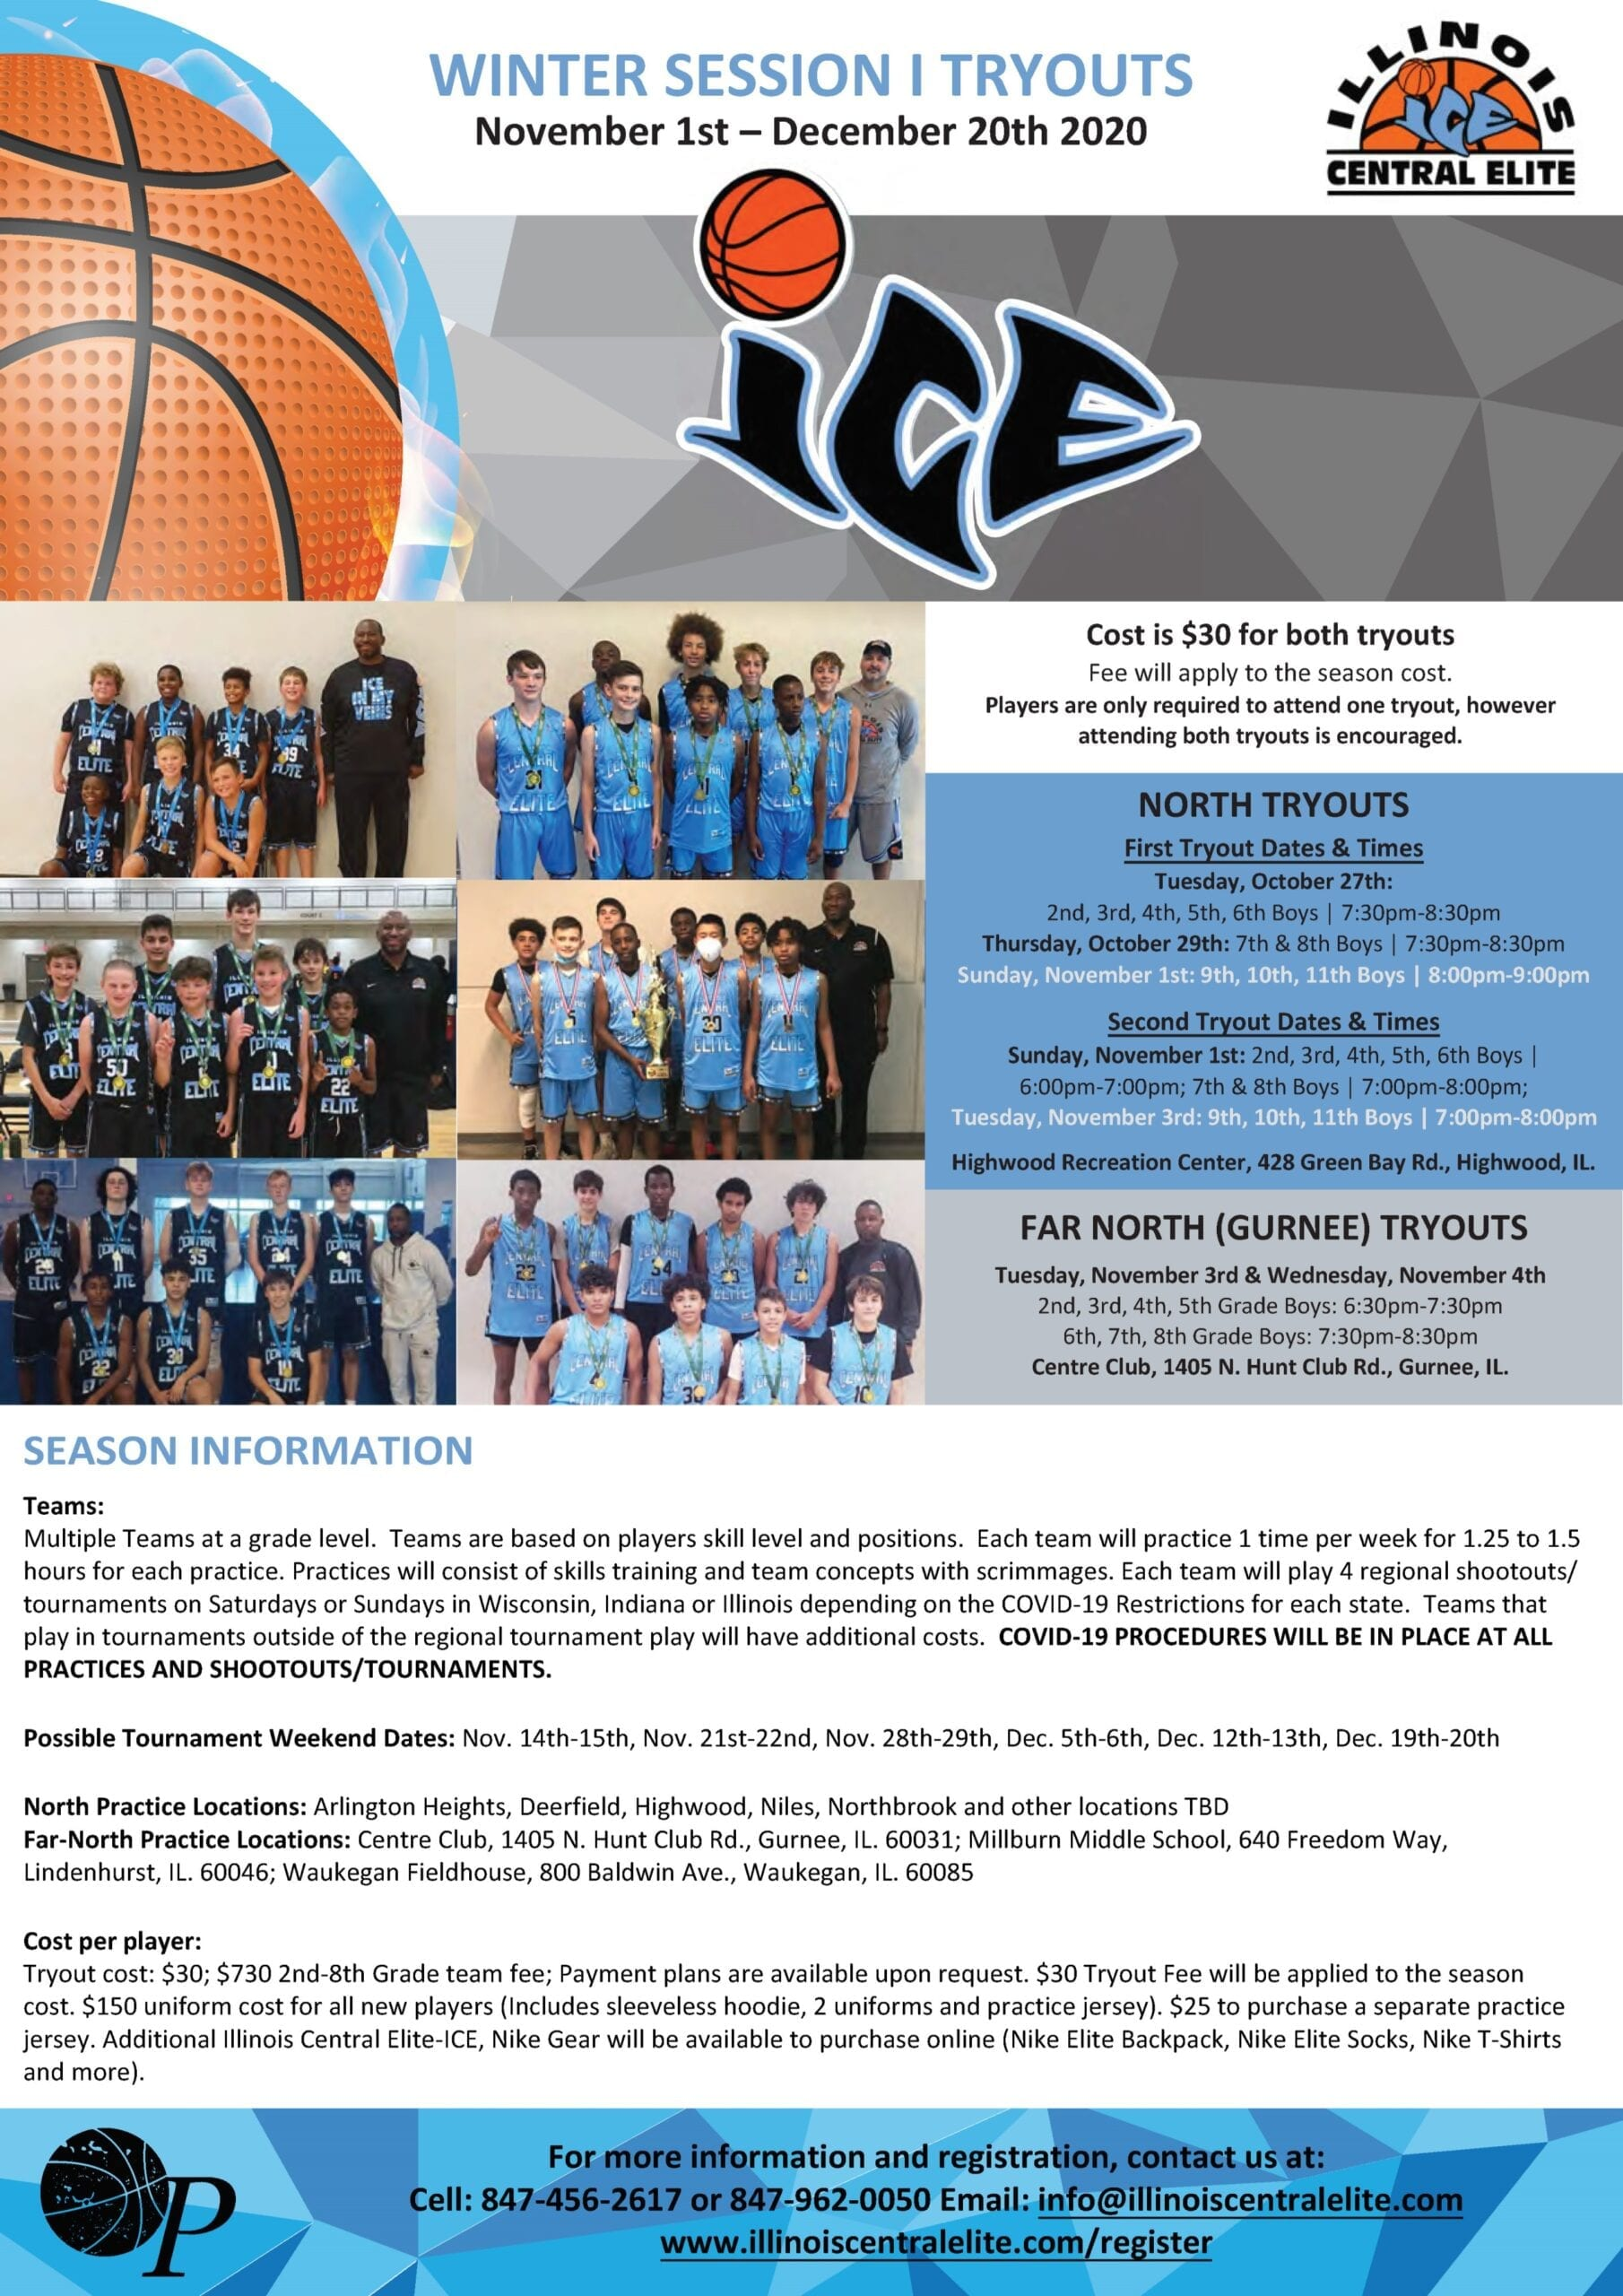 2020 Winter I Tryouts